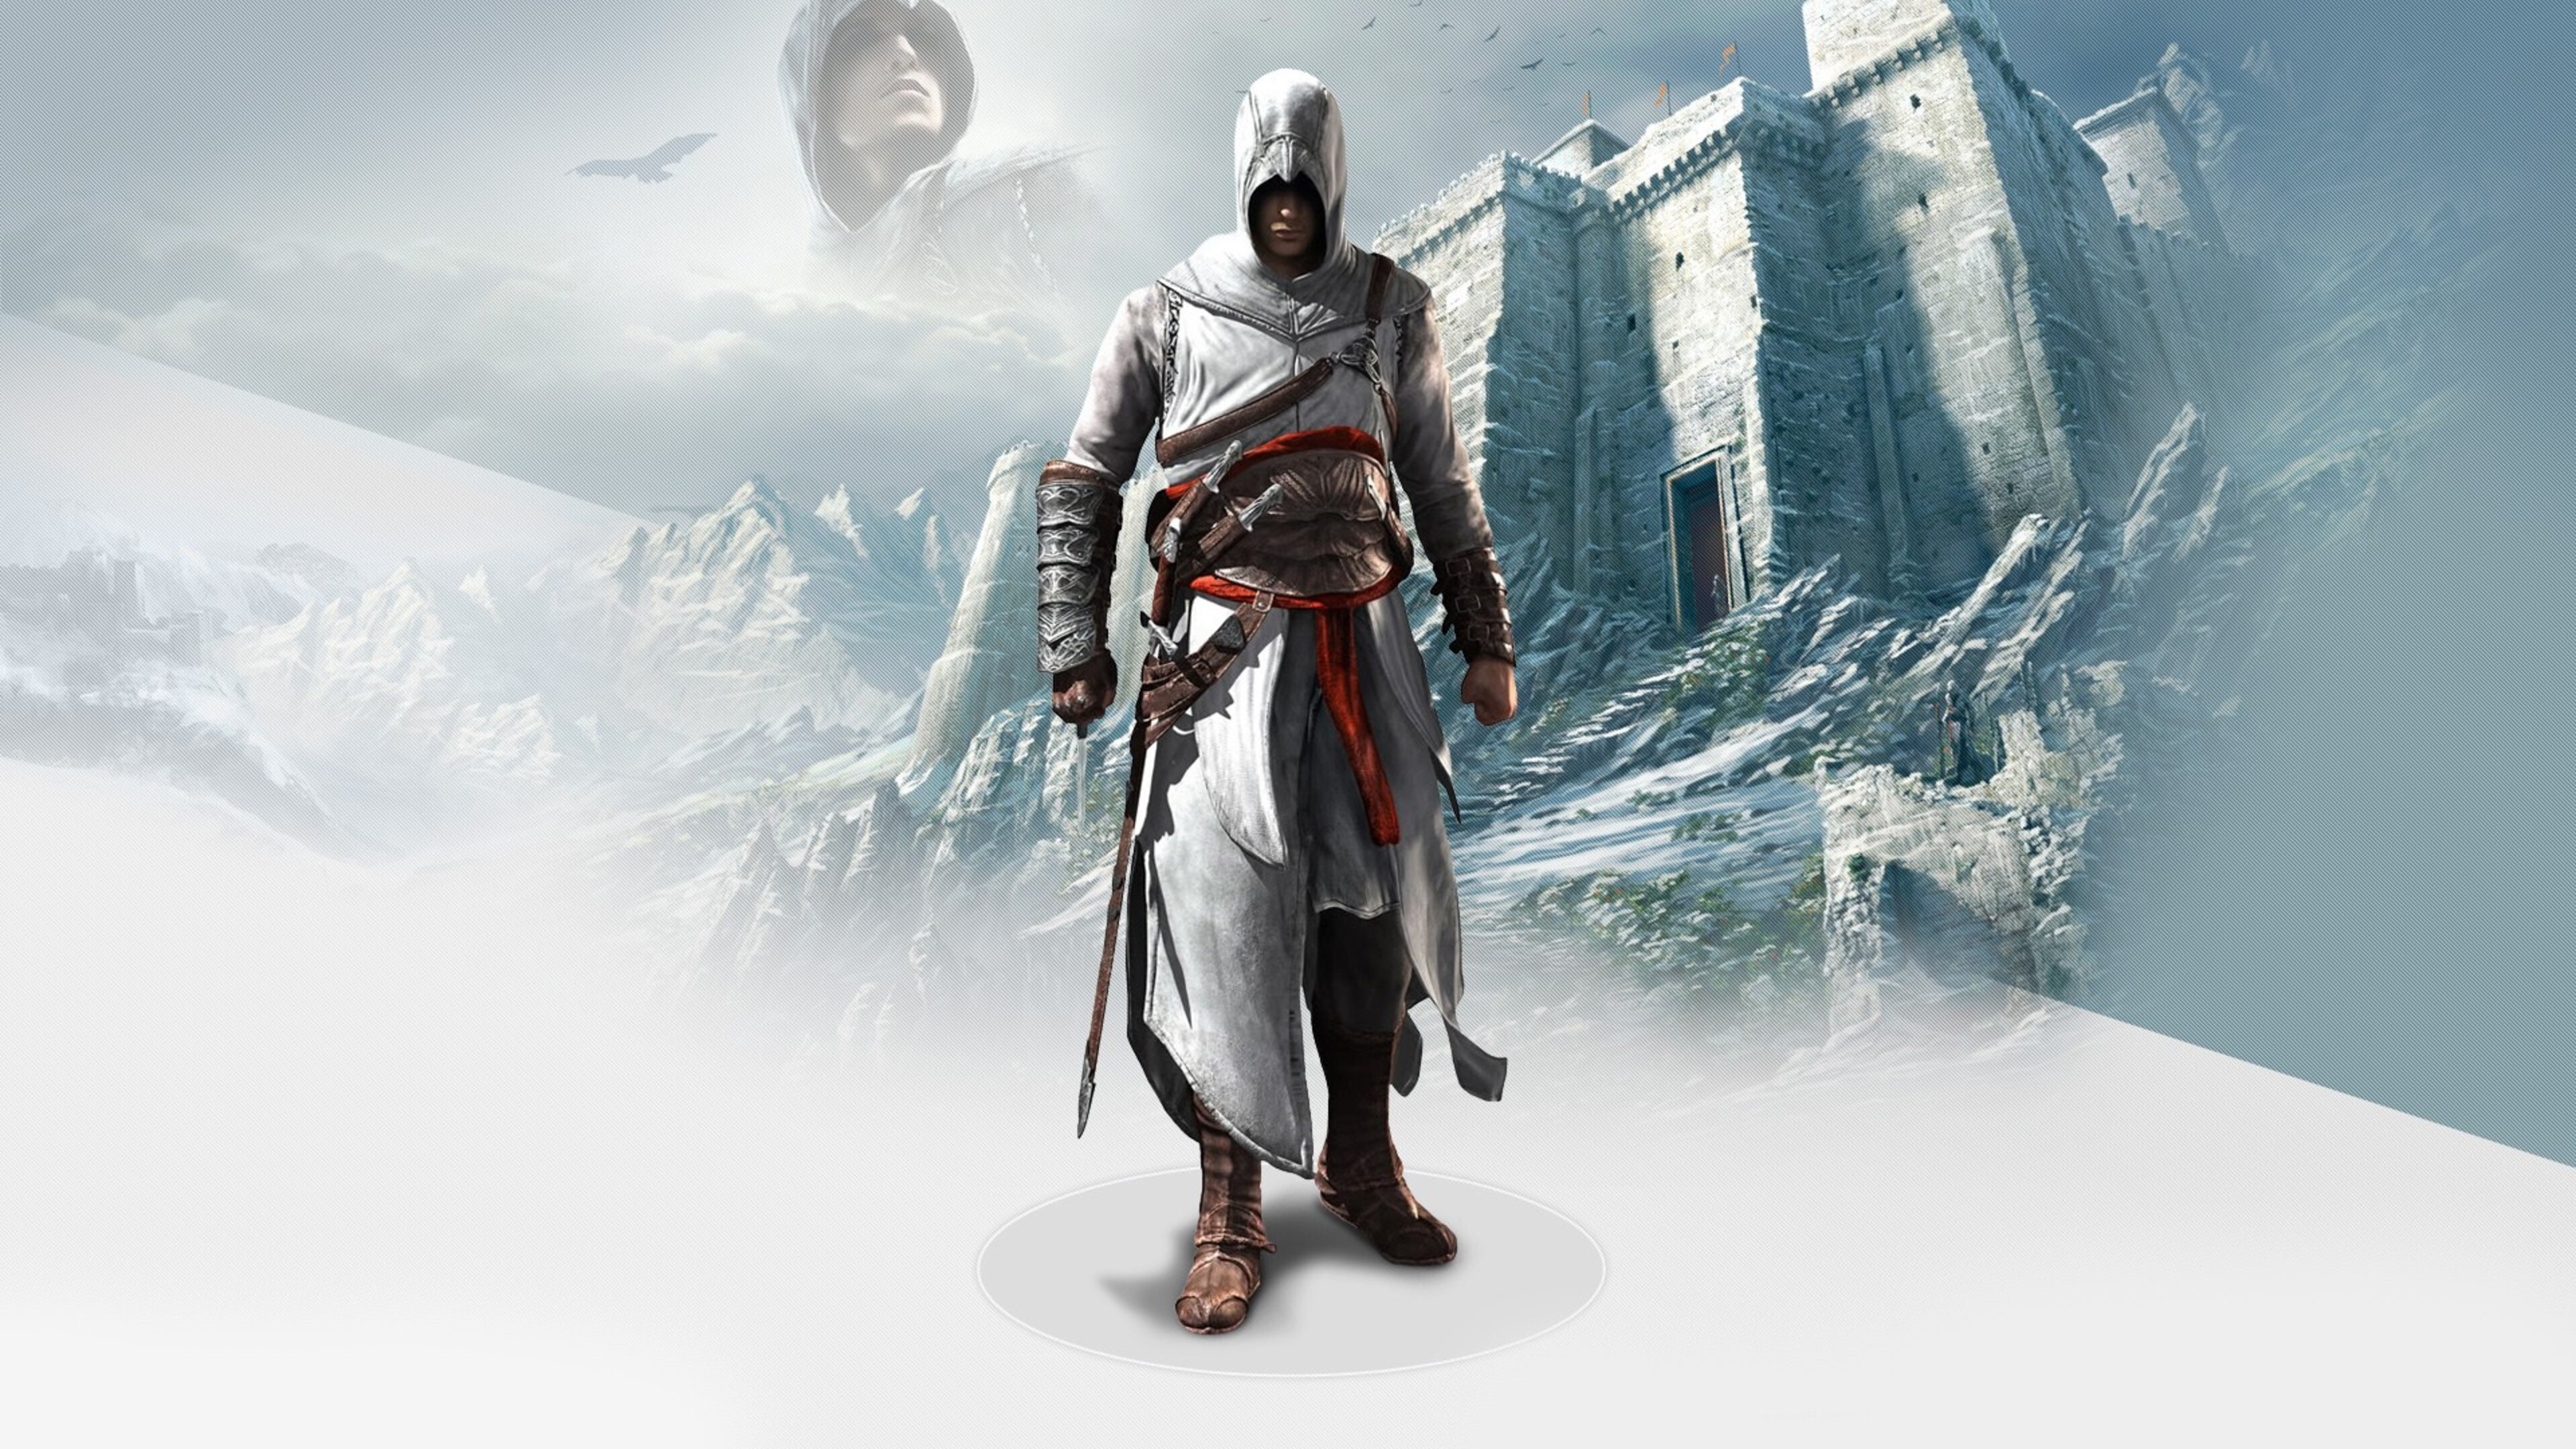 altair-in-assassins-creed-2.jpg